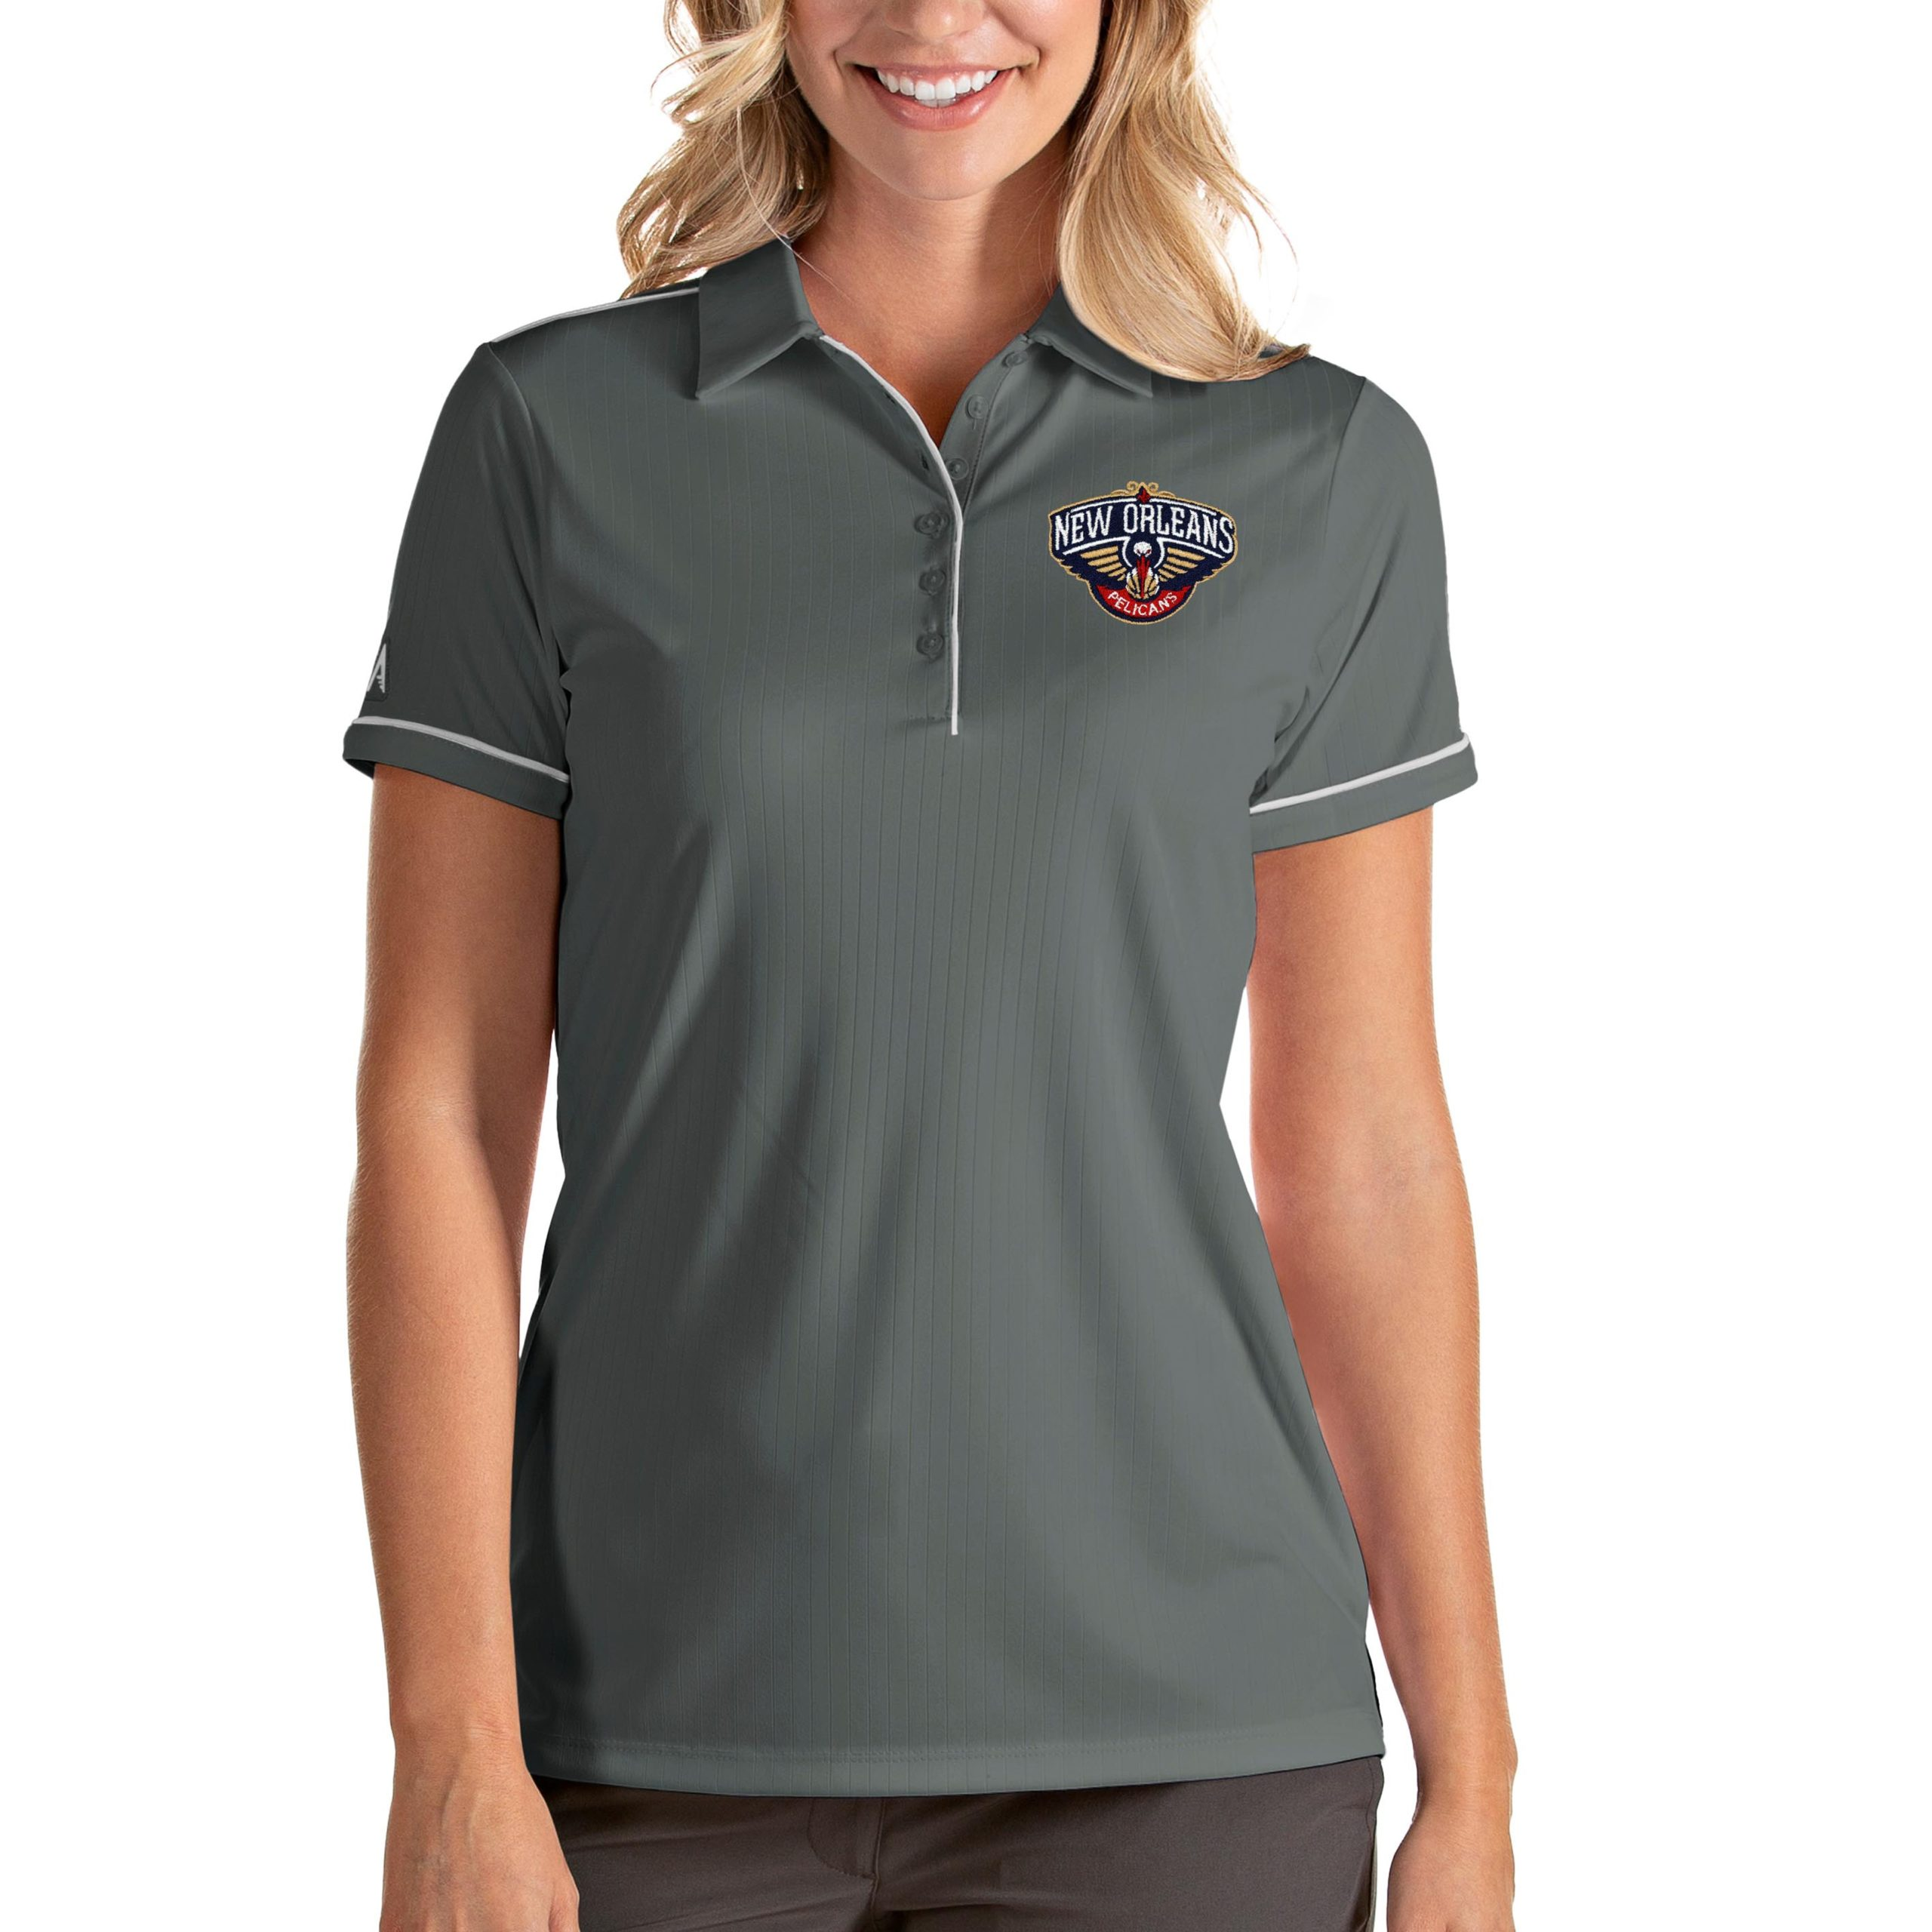 New Orleans Pelicans Antigua Women's Salute Polo - Gray/White